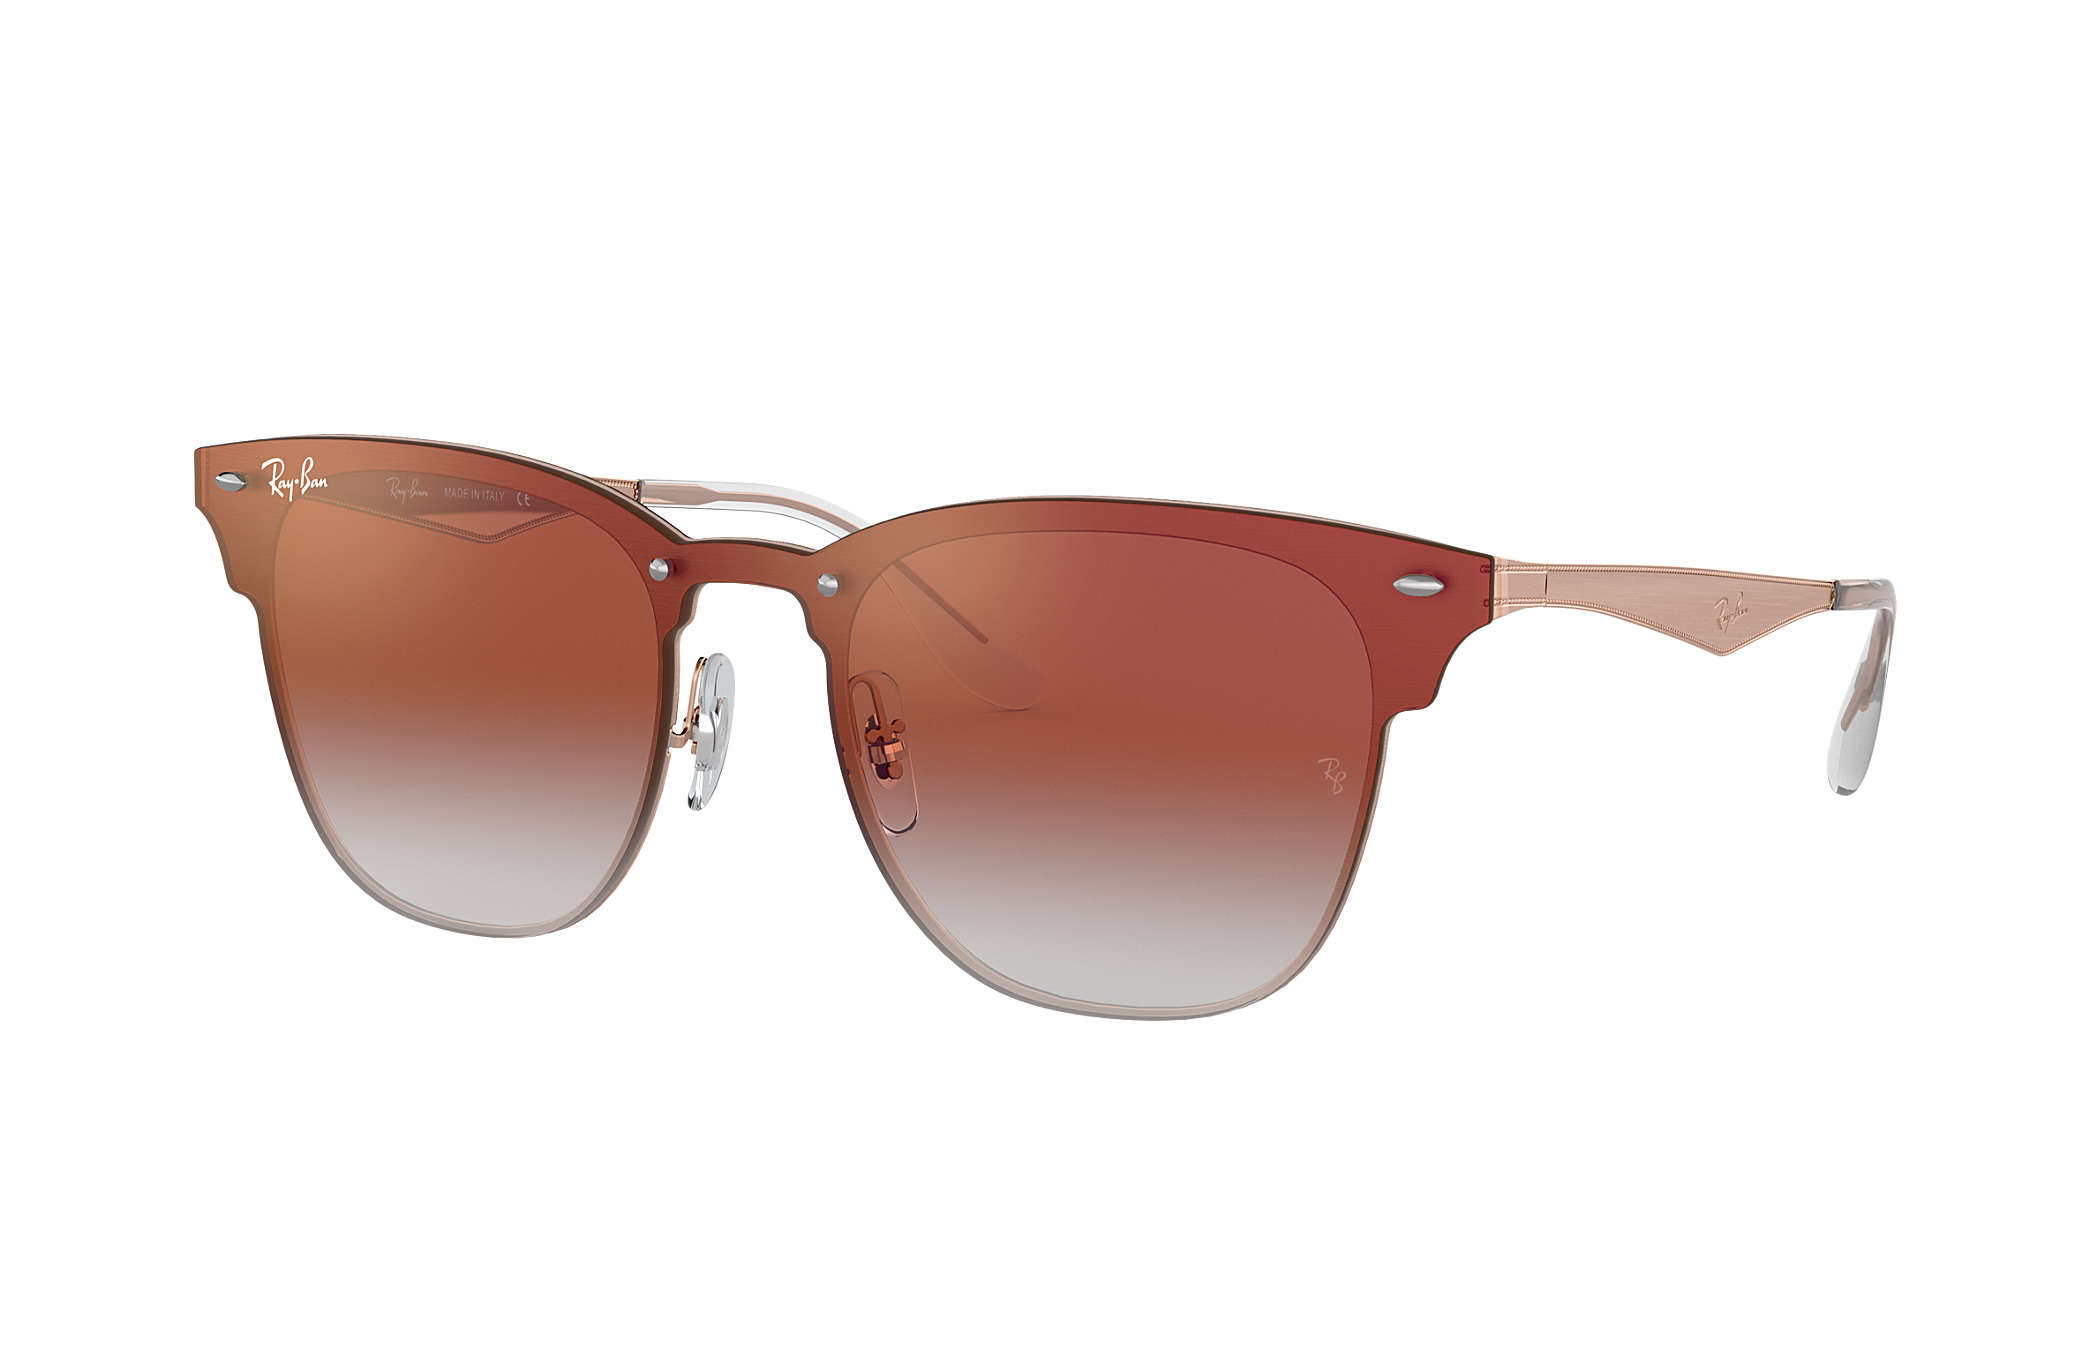 Ray-Ban Blaze Clubmaster RB3576N Bronze-Copper - Steel - Red Lenses ... 75a2fa3b6315